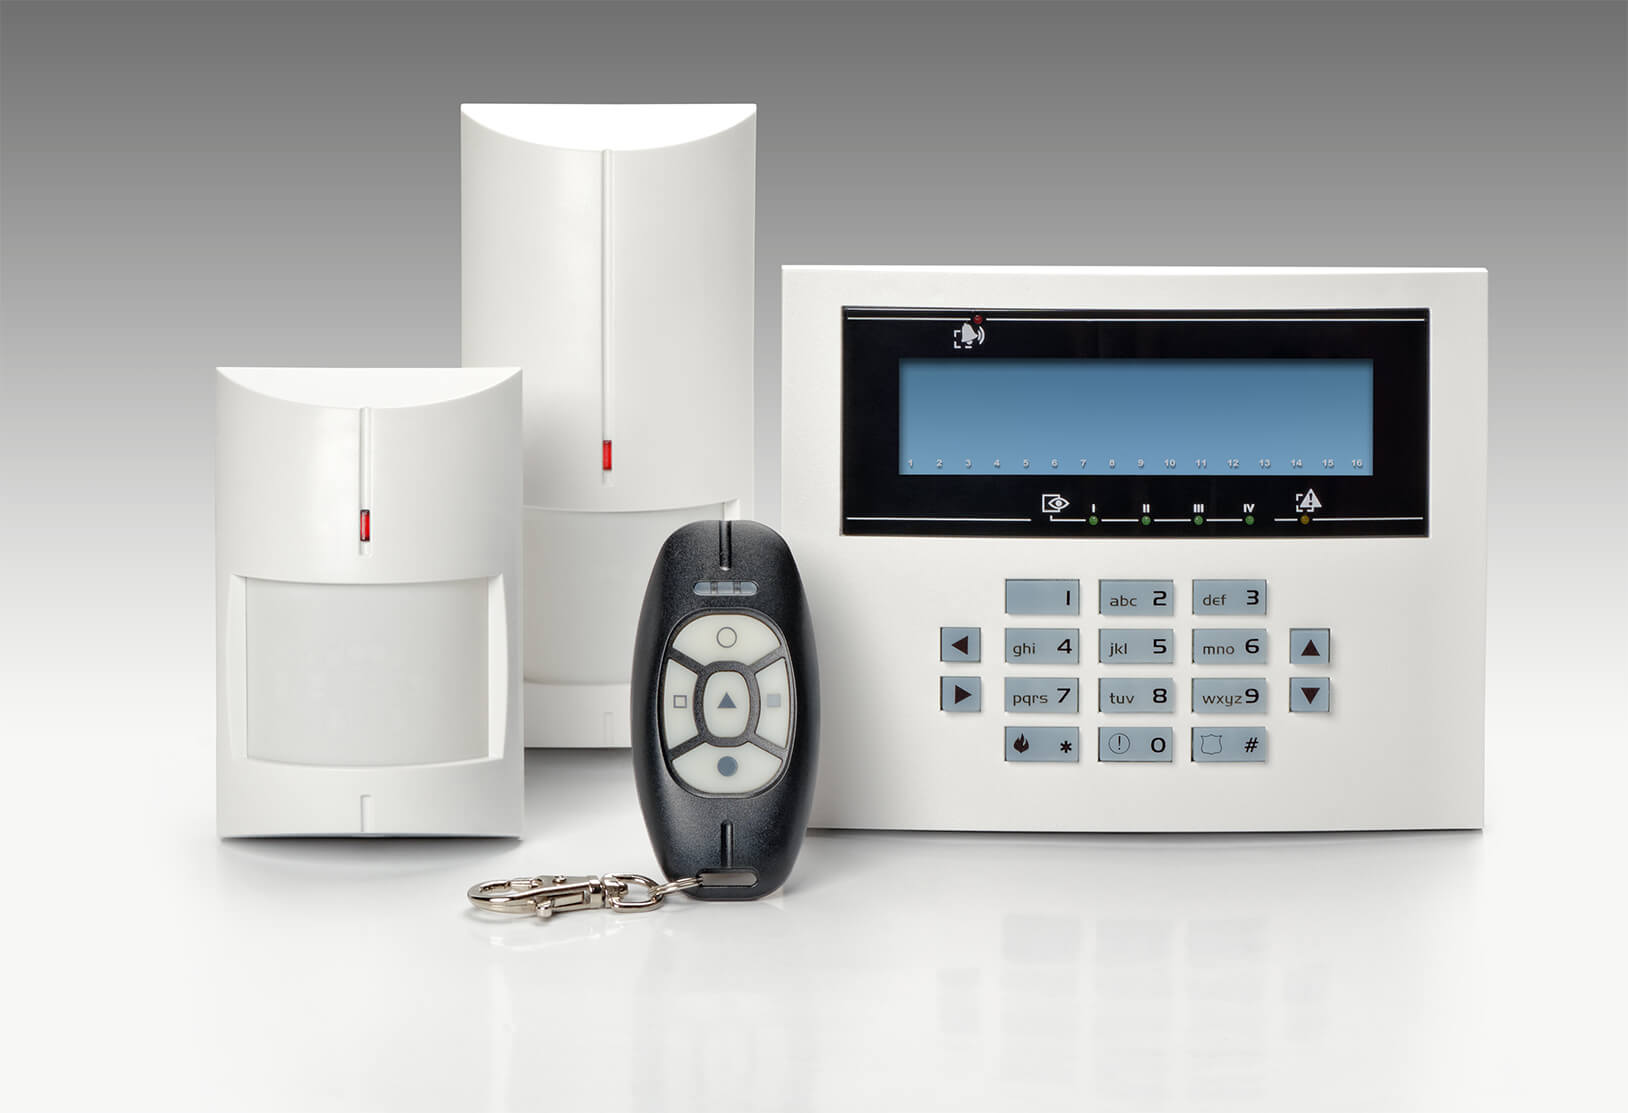 Business & Residential NACOSS Approved Burglar Alarms In Upper Edmonton N18 - Local Upper Edmonton N18 security company.Call 02078872244 - Dedicated to Safety & Security. Companies, shops and homes ..